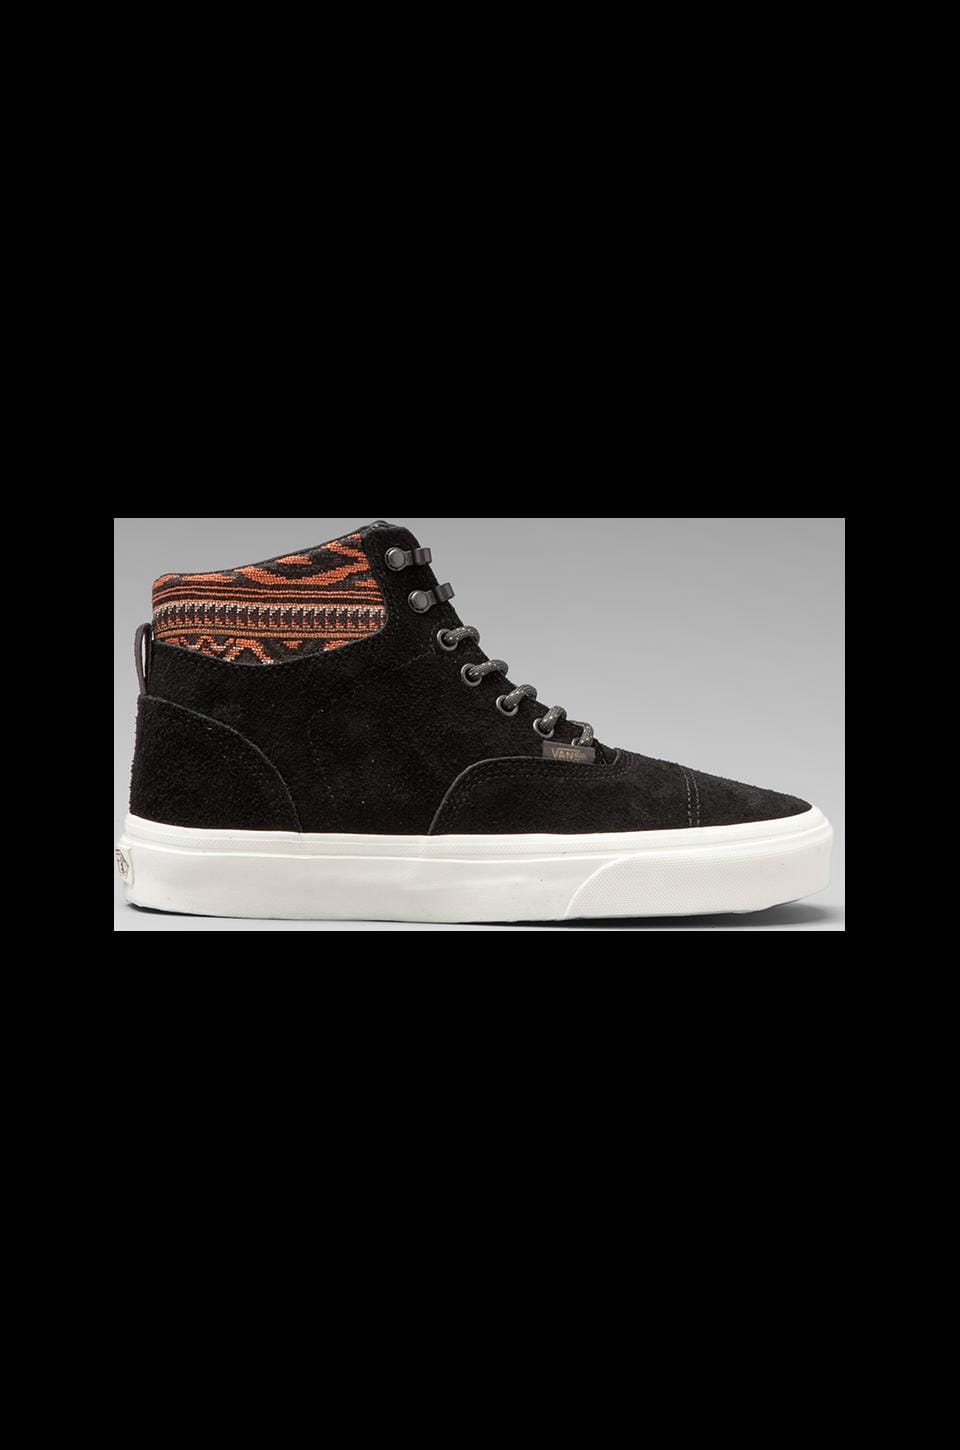 Vans California Era Hi in Black/Inca